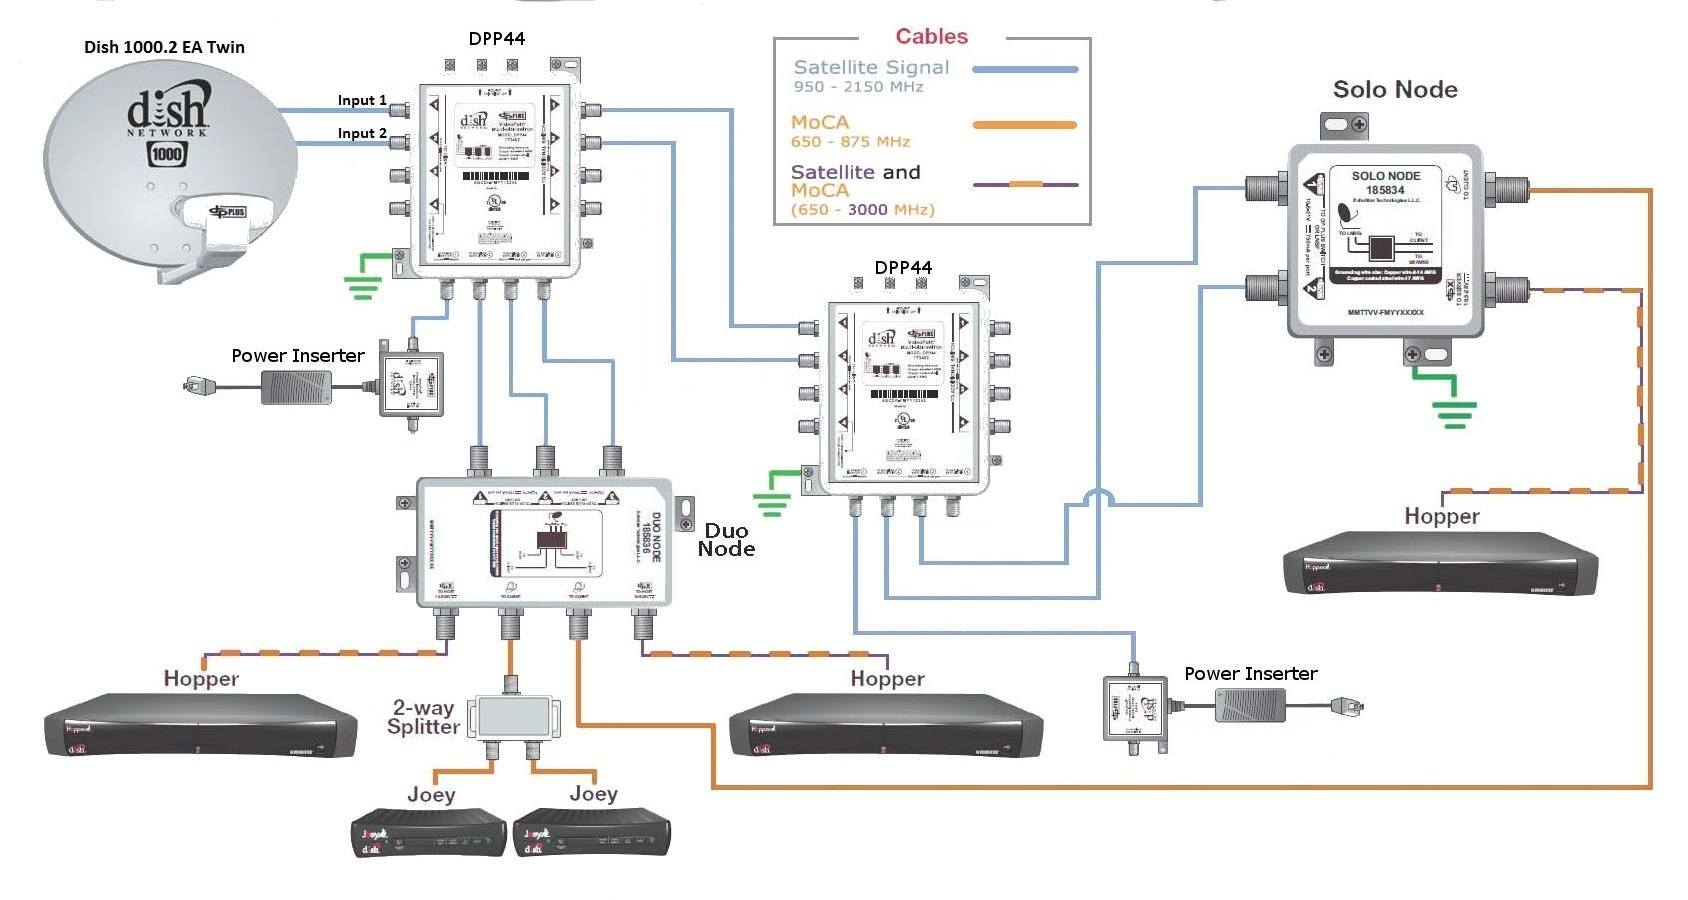 hopper wiring diagram dish network hopper installation \u2022 wiring  at bayanpartner.co